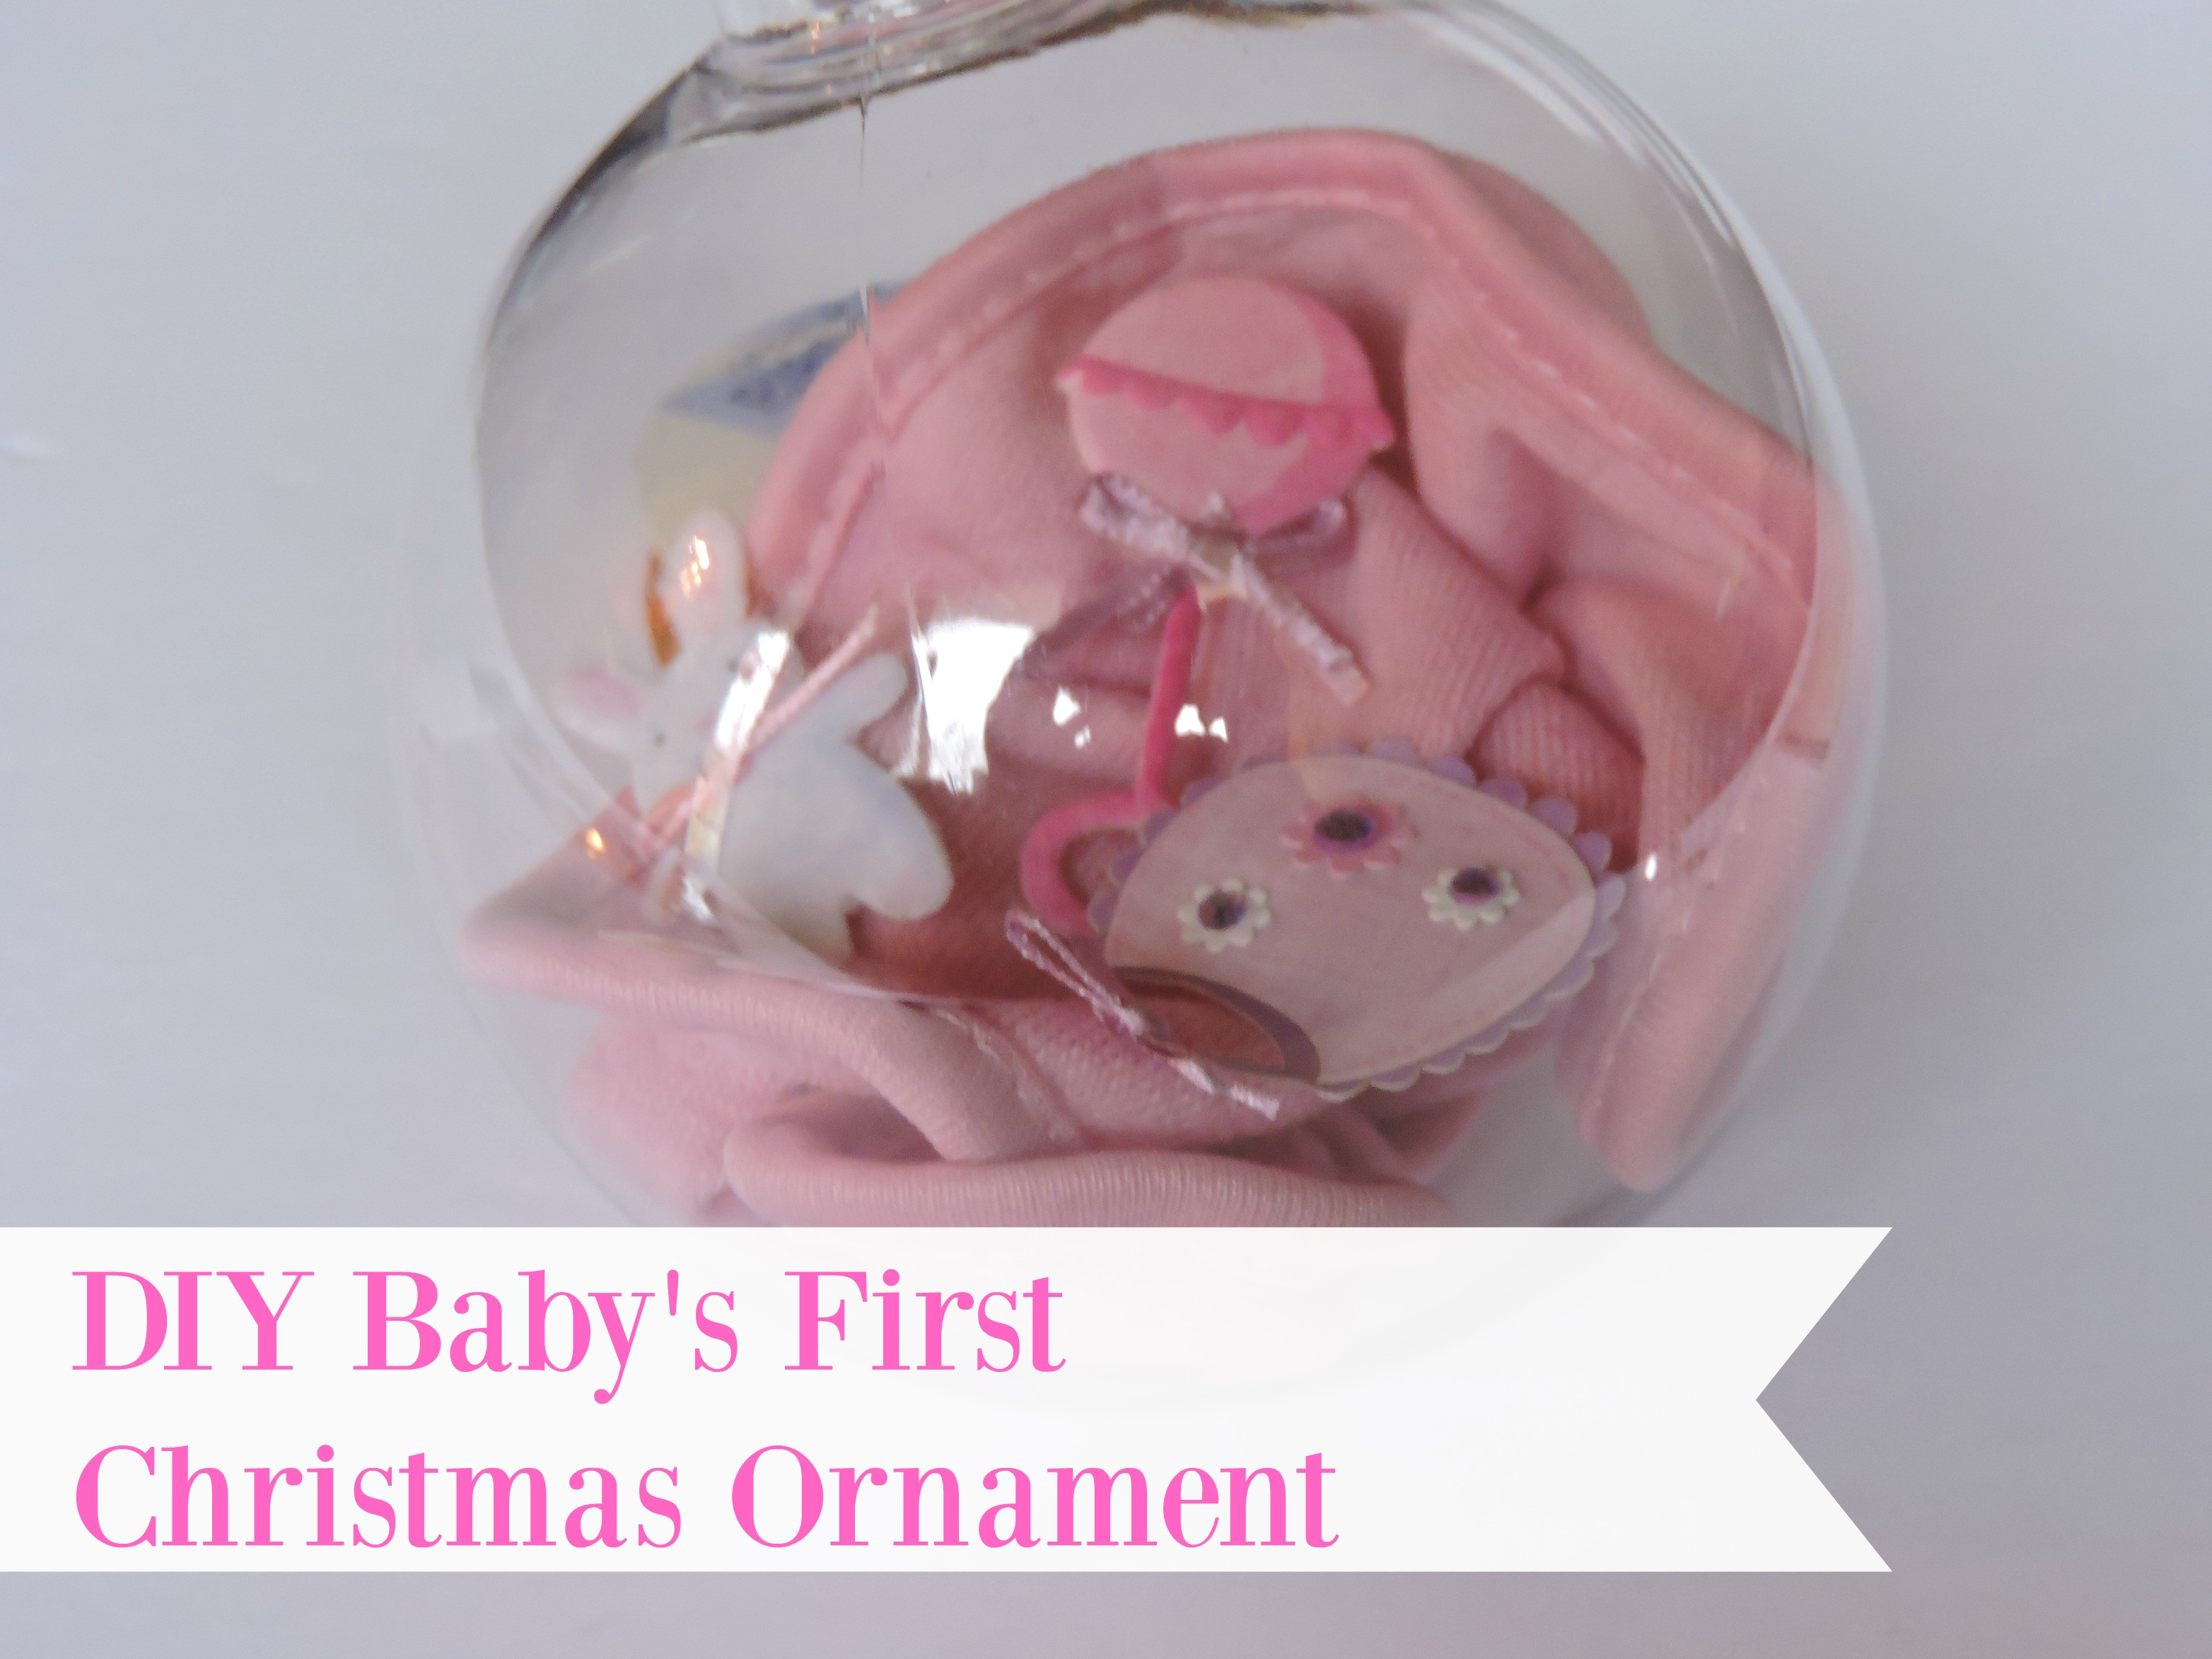 Best ideas about DIY Baby First Christmas Ornament . Save or Pin DIY Baby s First Christmas Ornament Now.